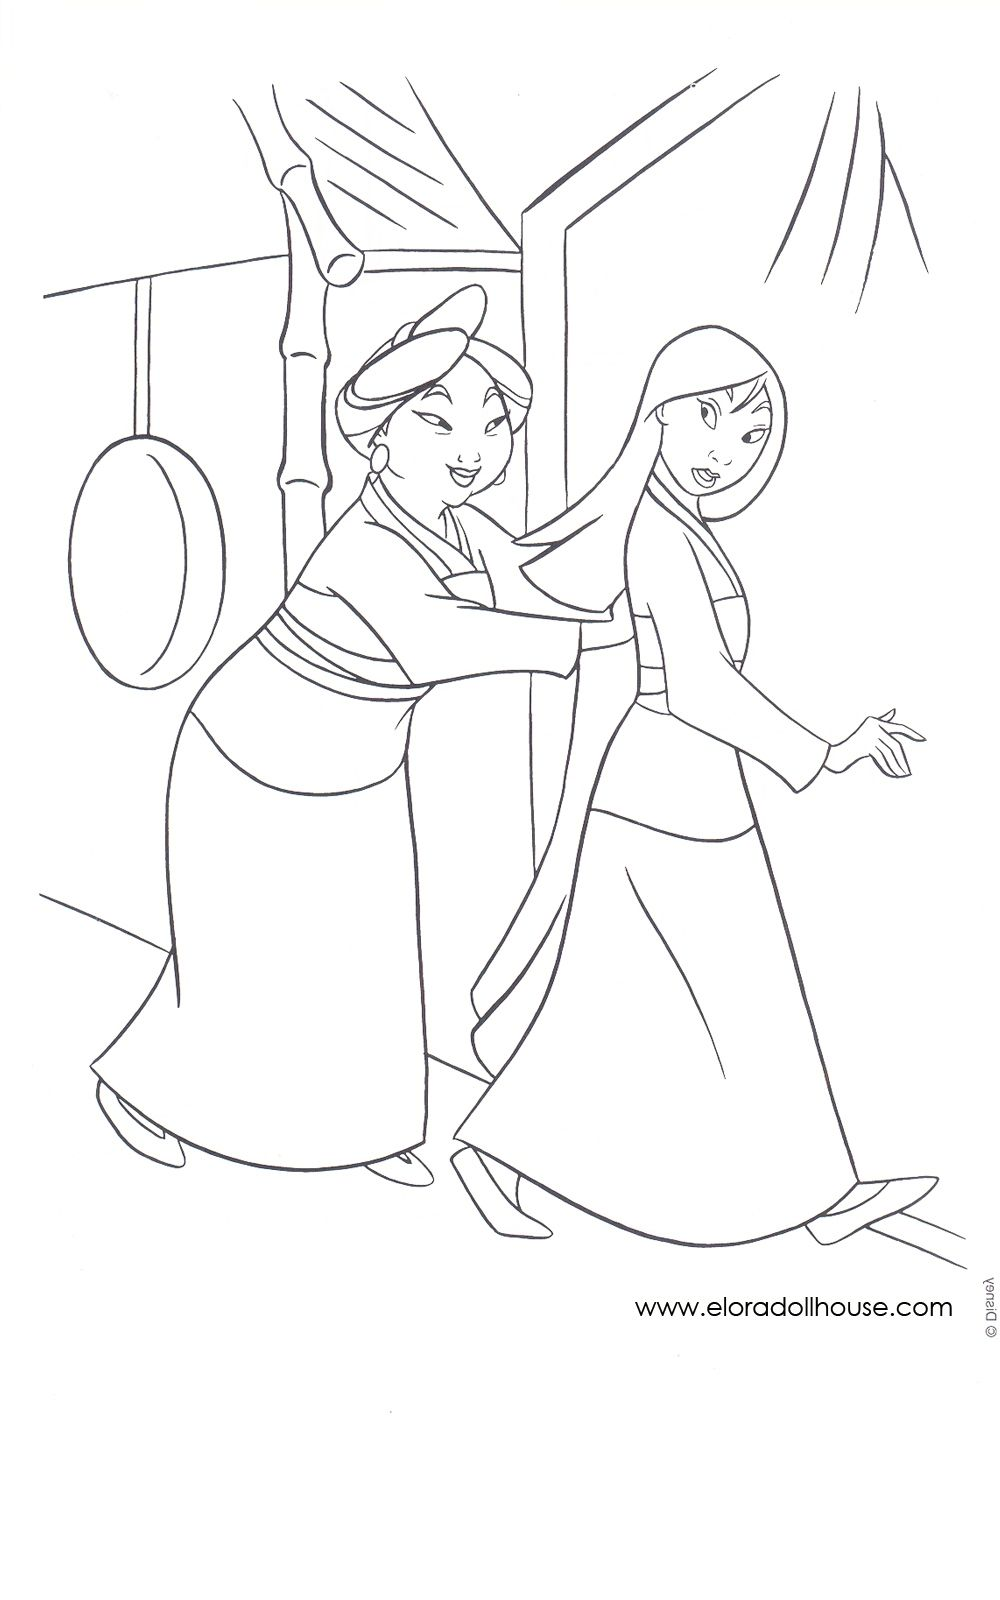 mulan coloring pages | Disney Mulan Coloring Pages #6 ...